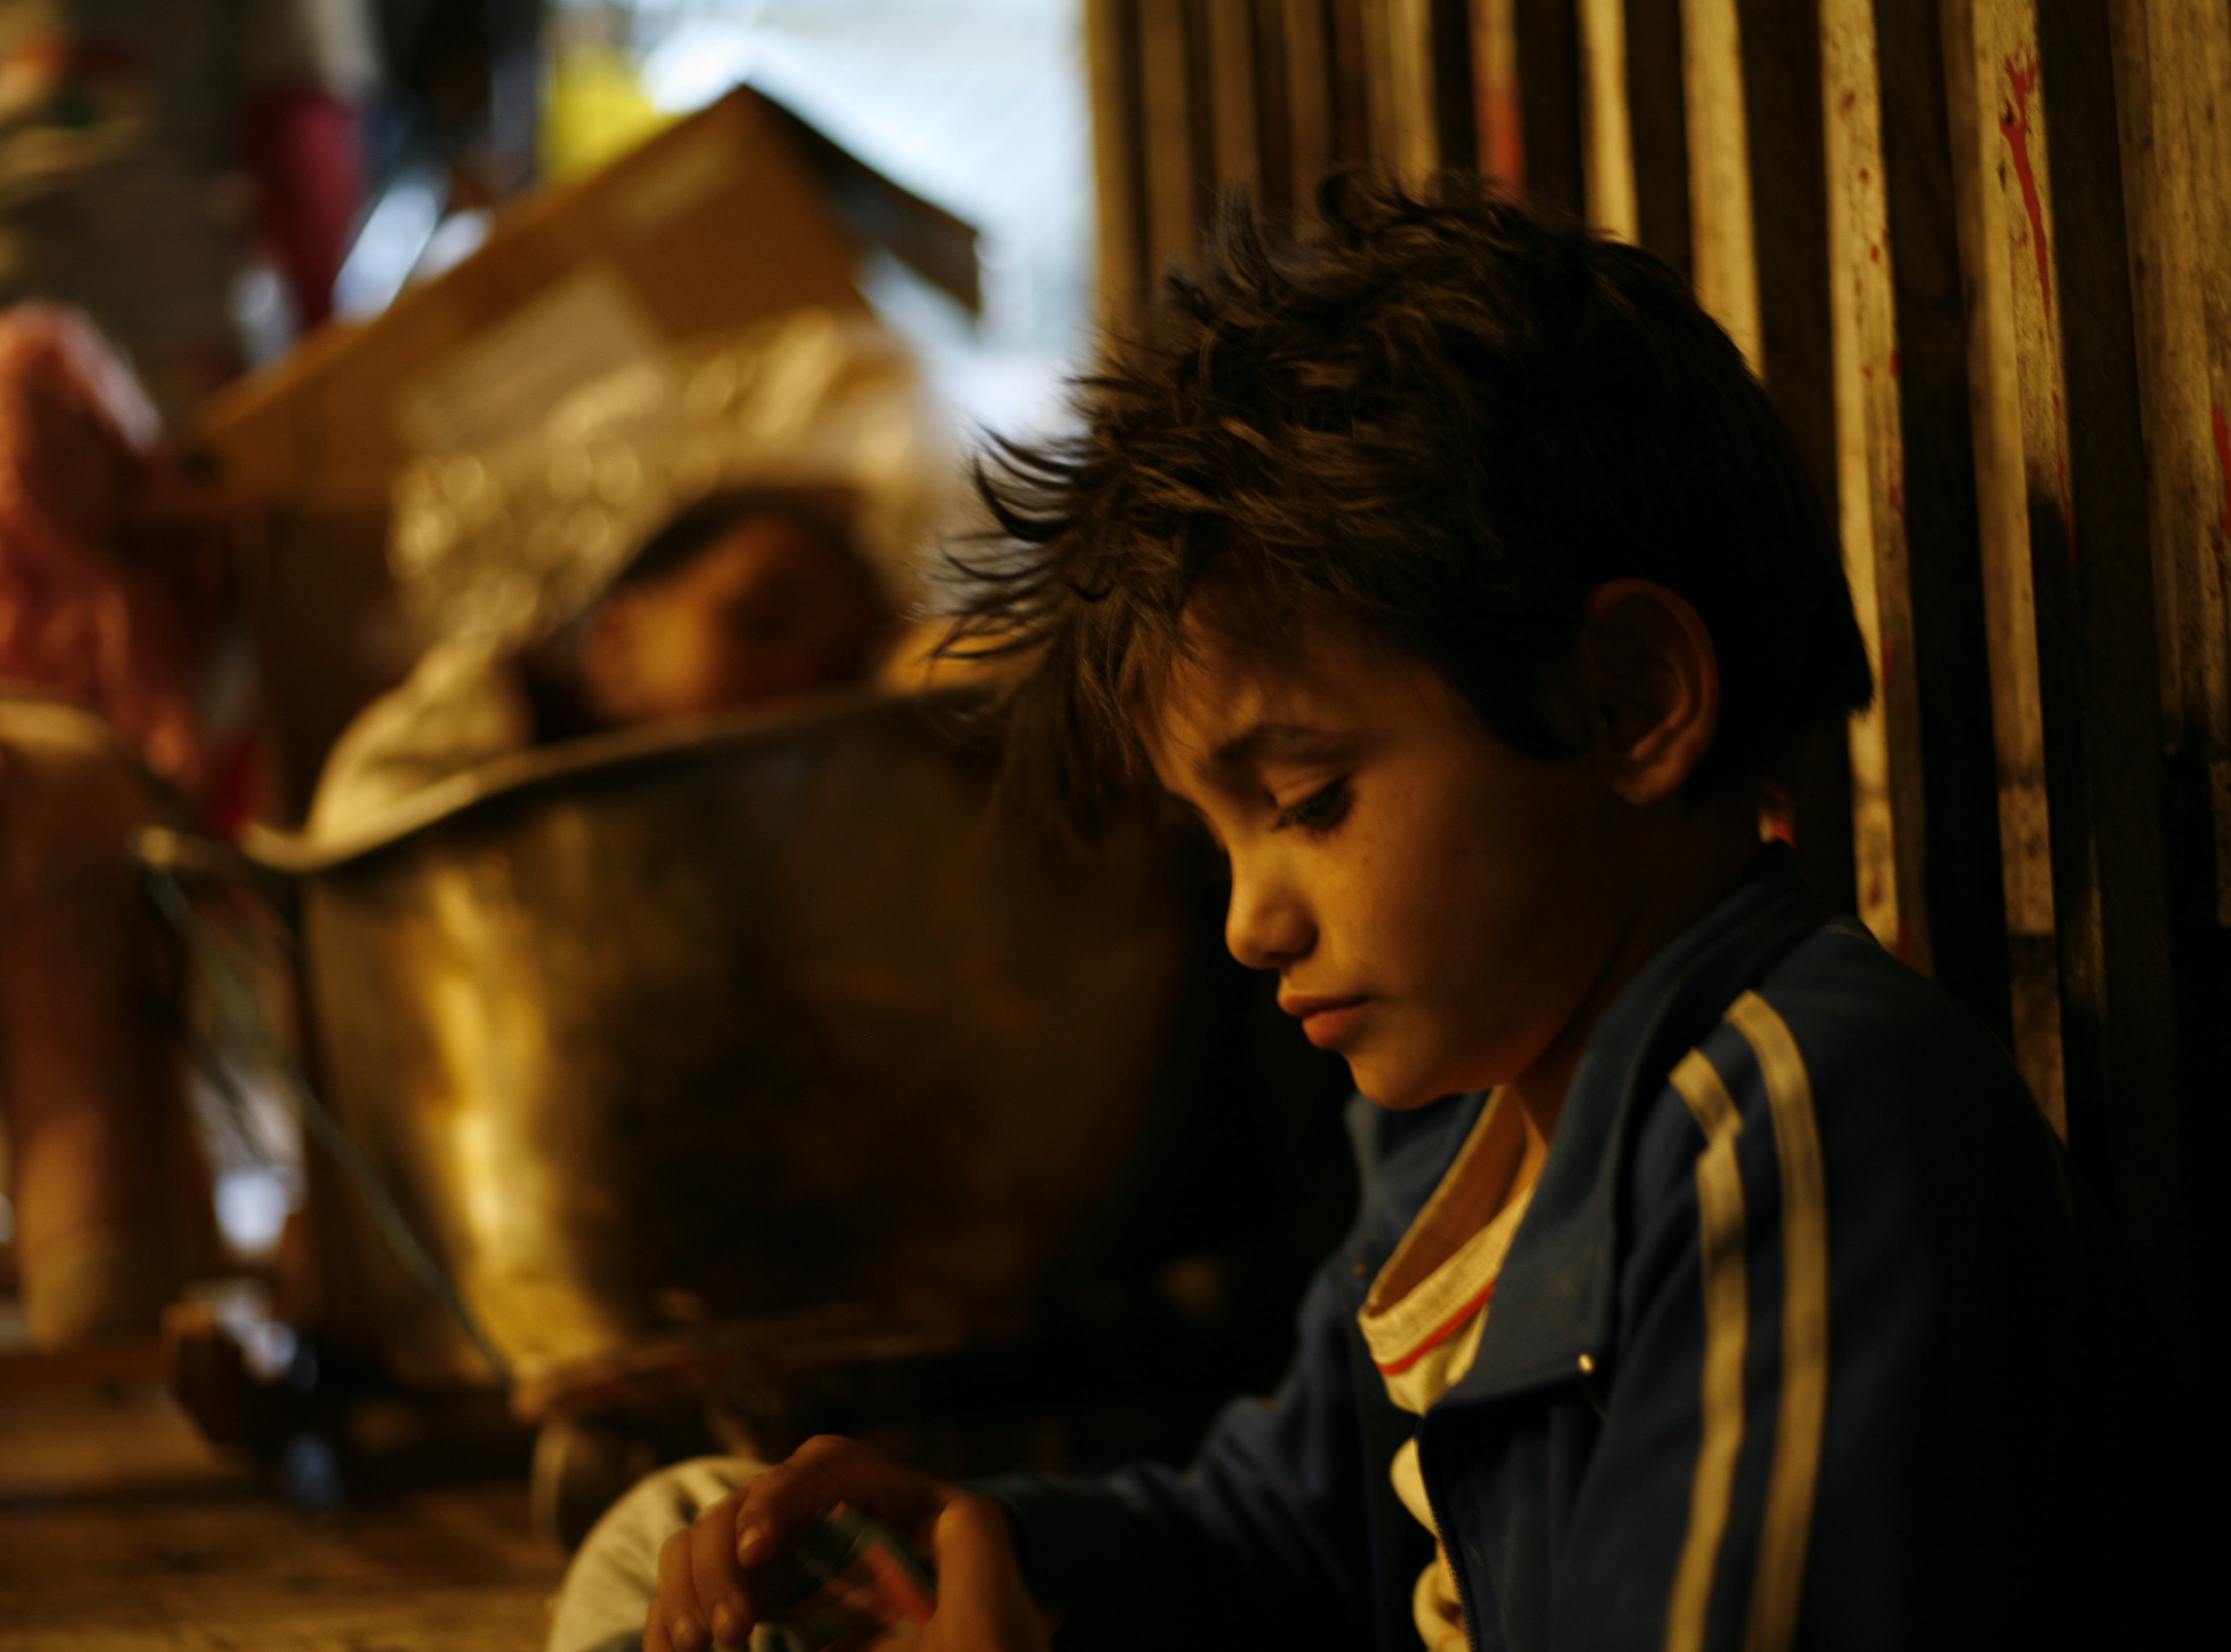 """Zain Al Rafeea stars in """"Capernaum."""" From the review: """"'Capernaum' is a tough slog, no doubt, even by tough-slog standards. But that's a big part of what makes it so rewarding."""" (four stars)"""